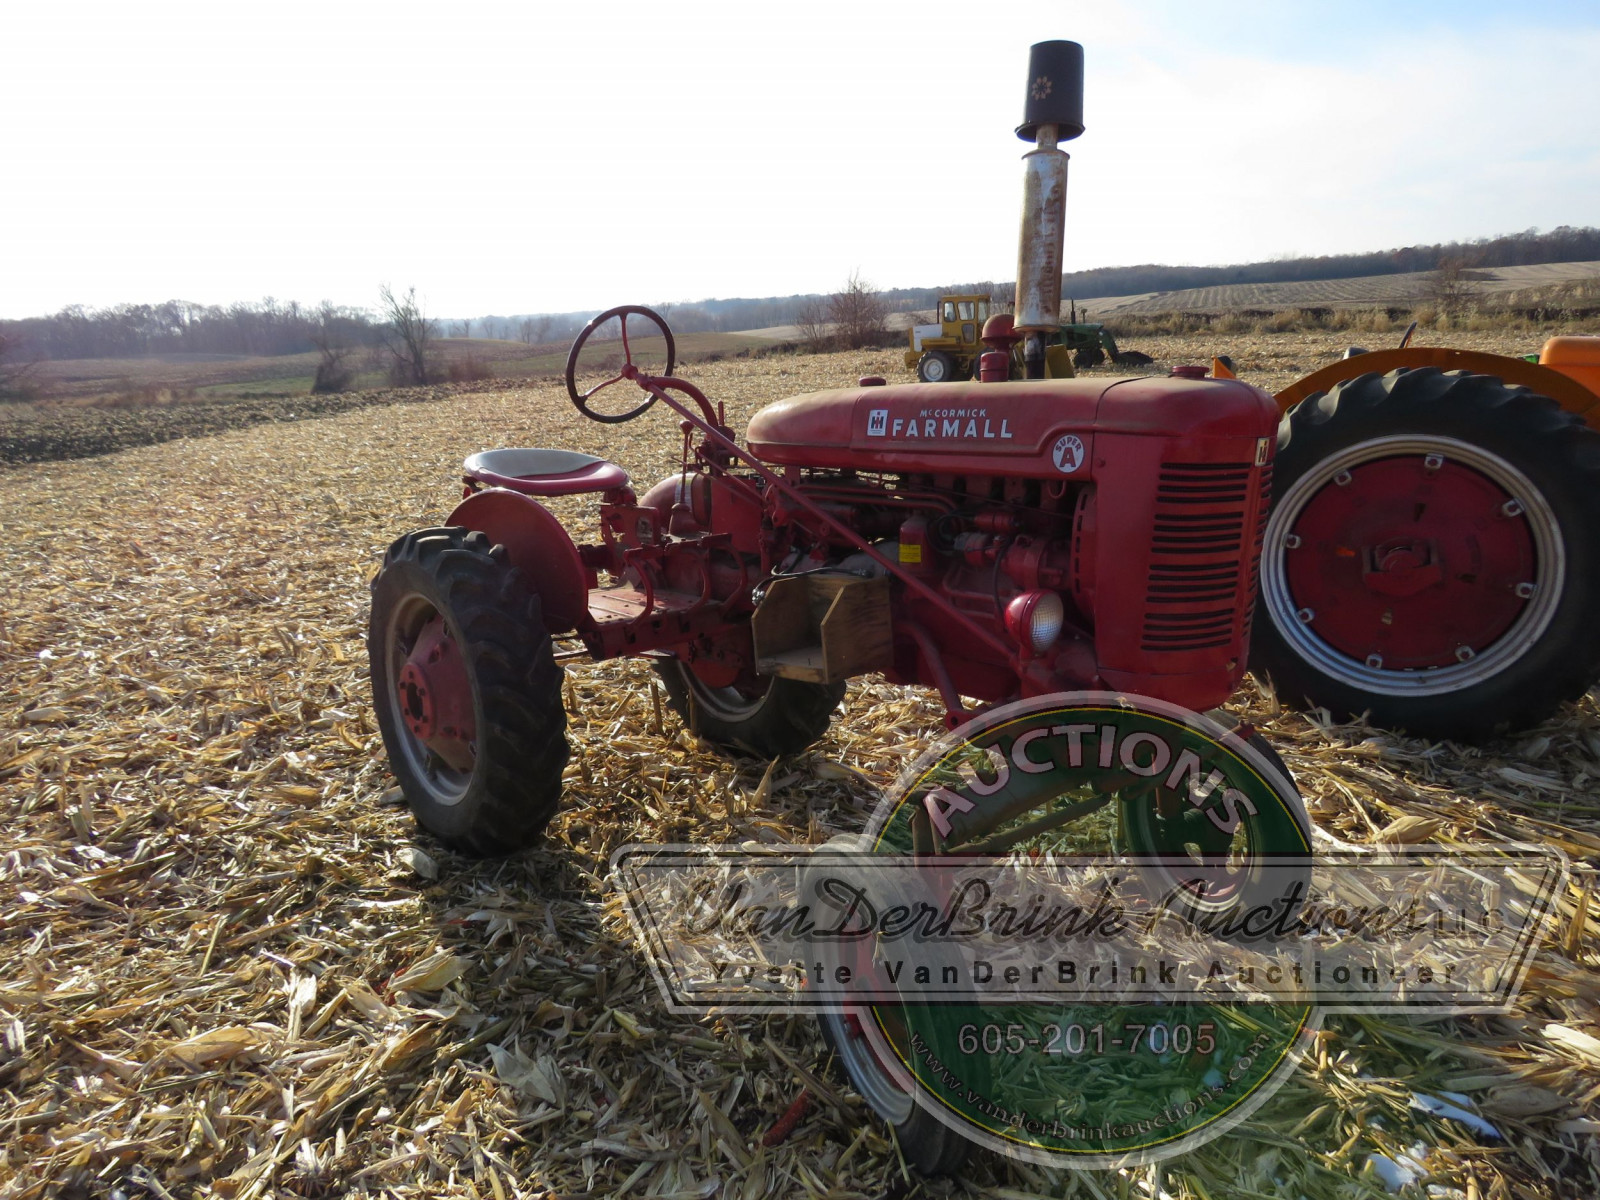 1945 International A Tractor - Image 3